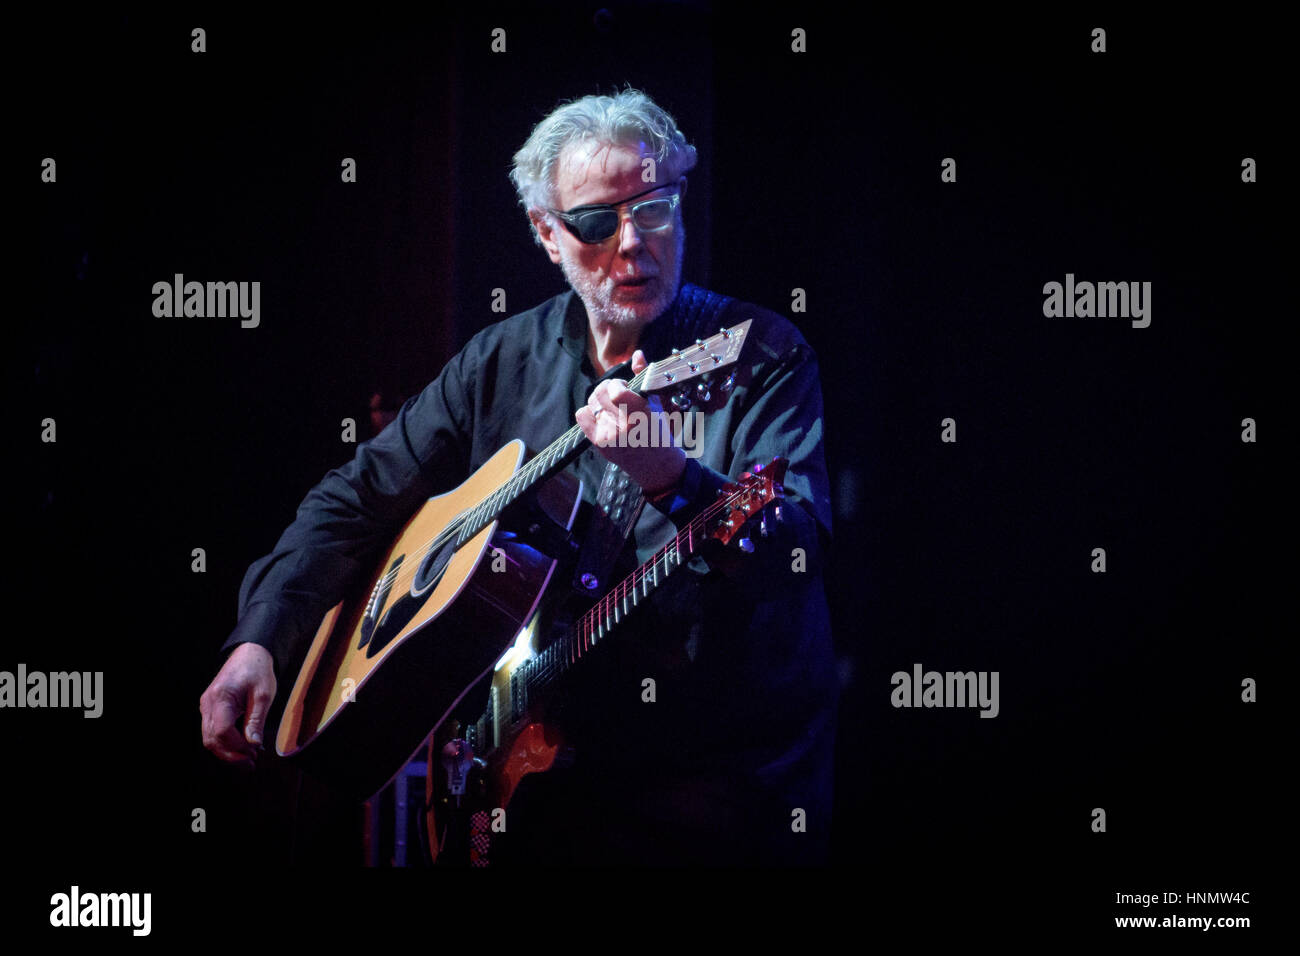 The Rock Band Kansas Stockfotos & The Rock Band Kansas Bilder - Alamy